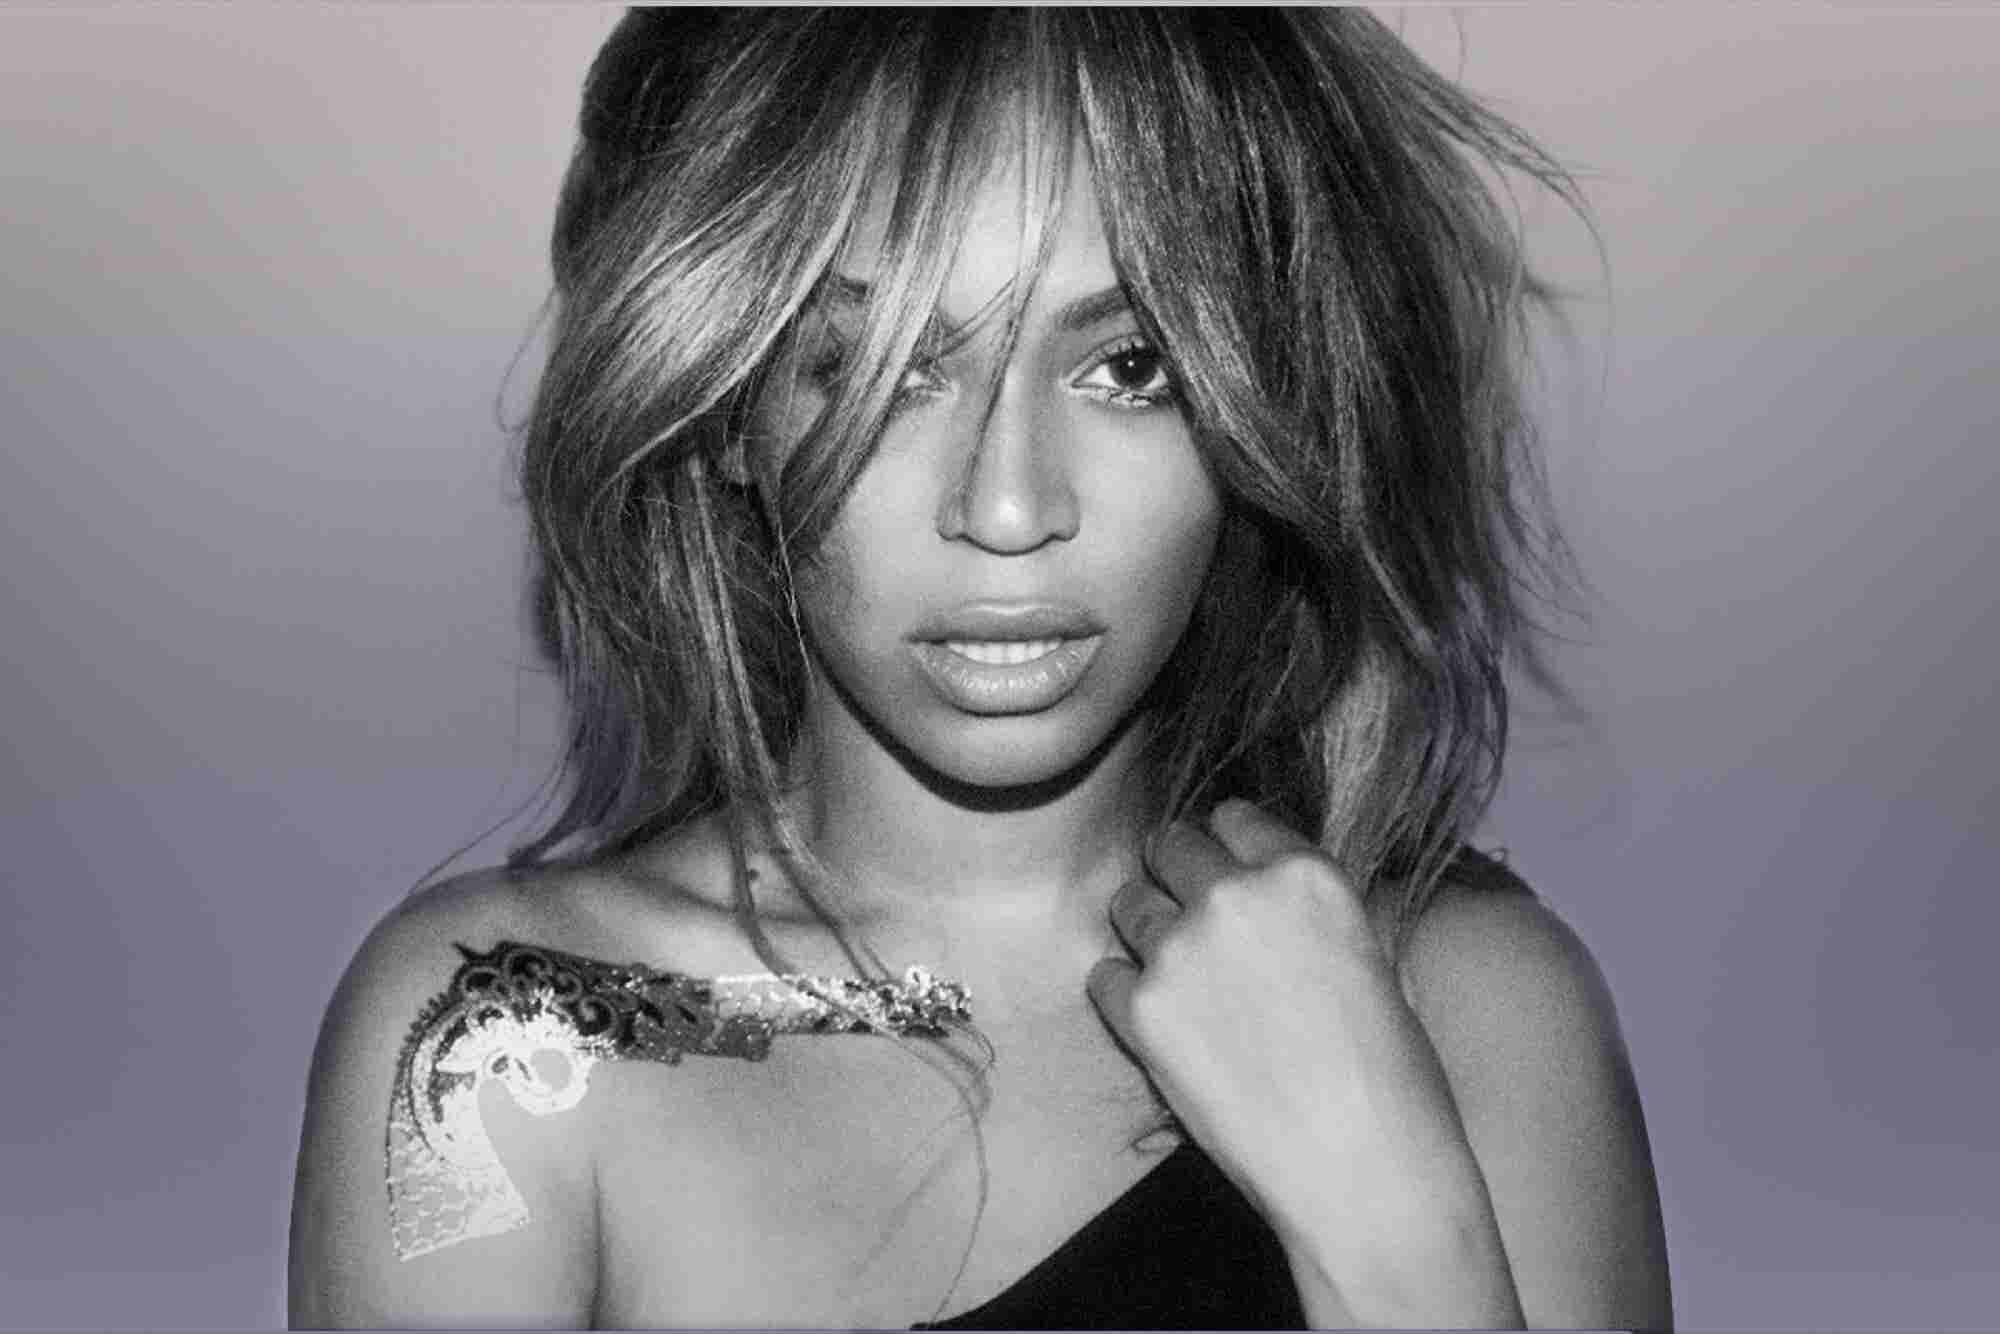 How Beyoncé Turned Flash Tattoos Into Much More Than a Flash-in-the-Pan Success